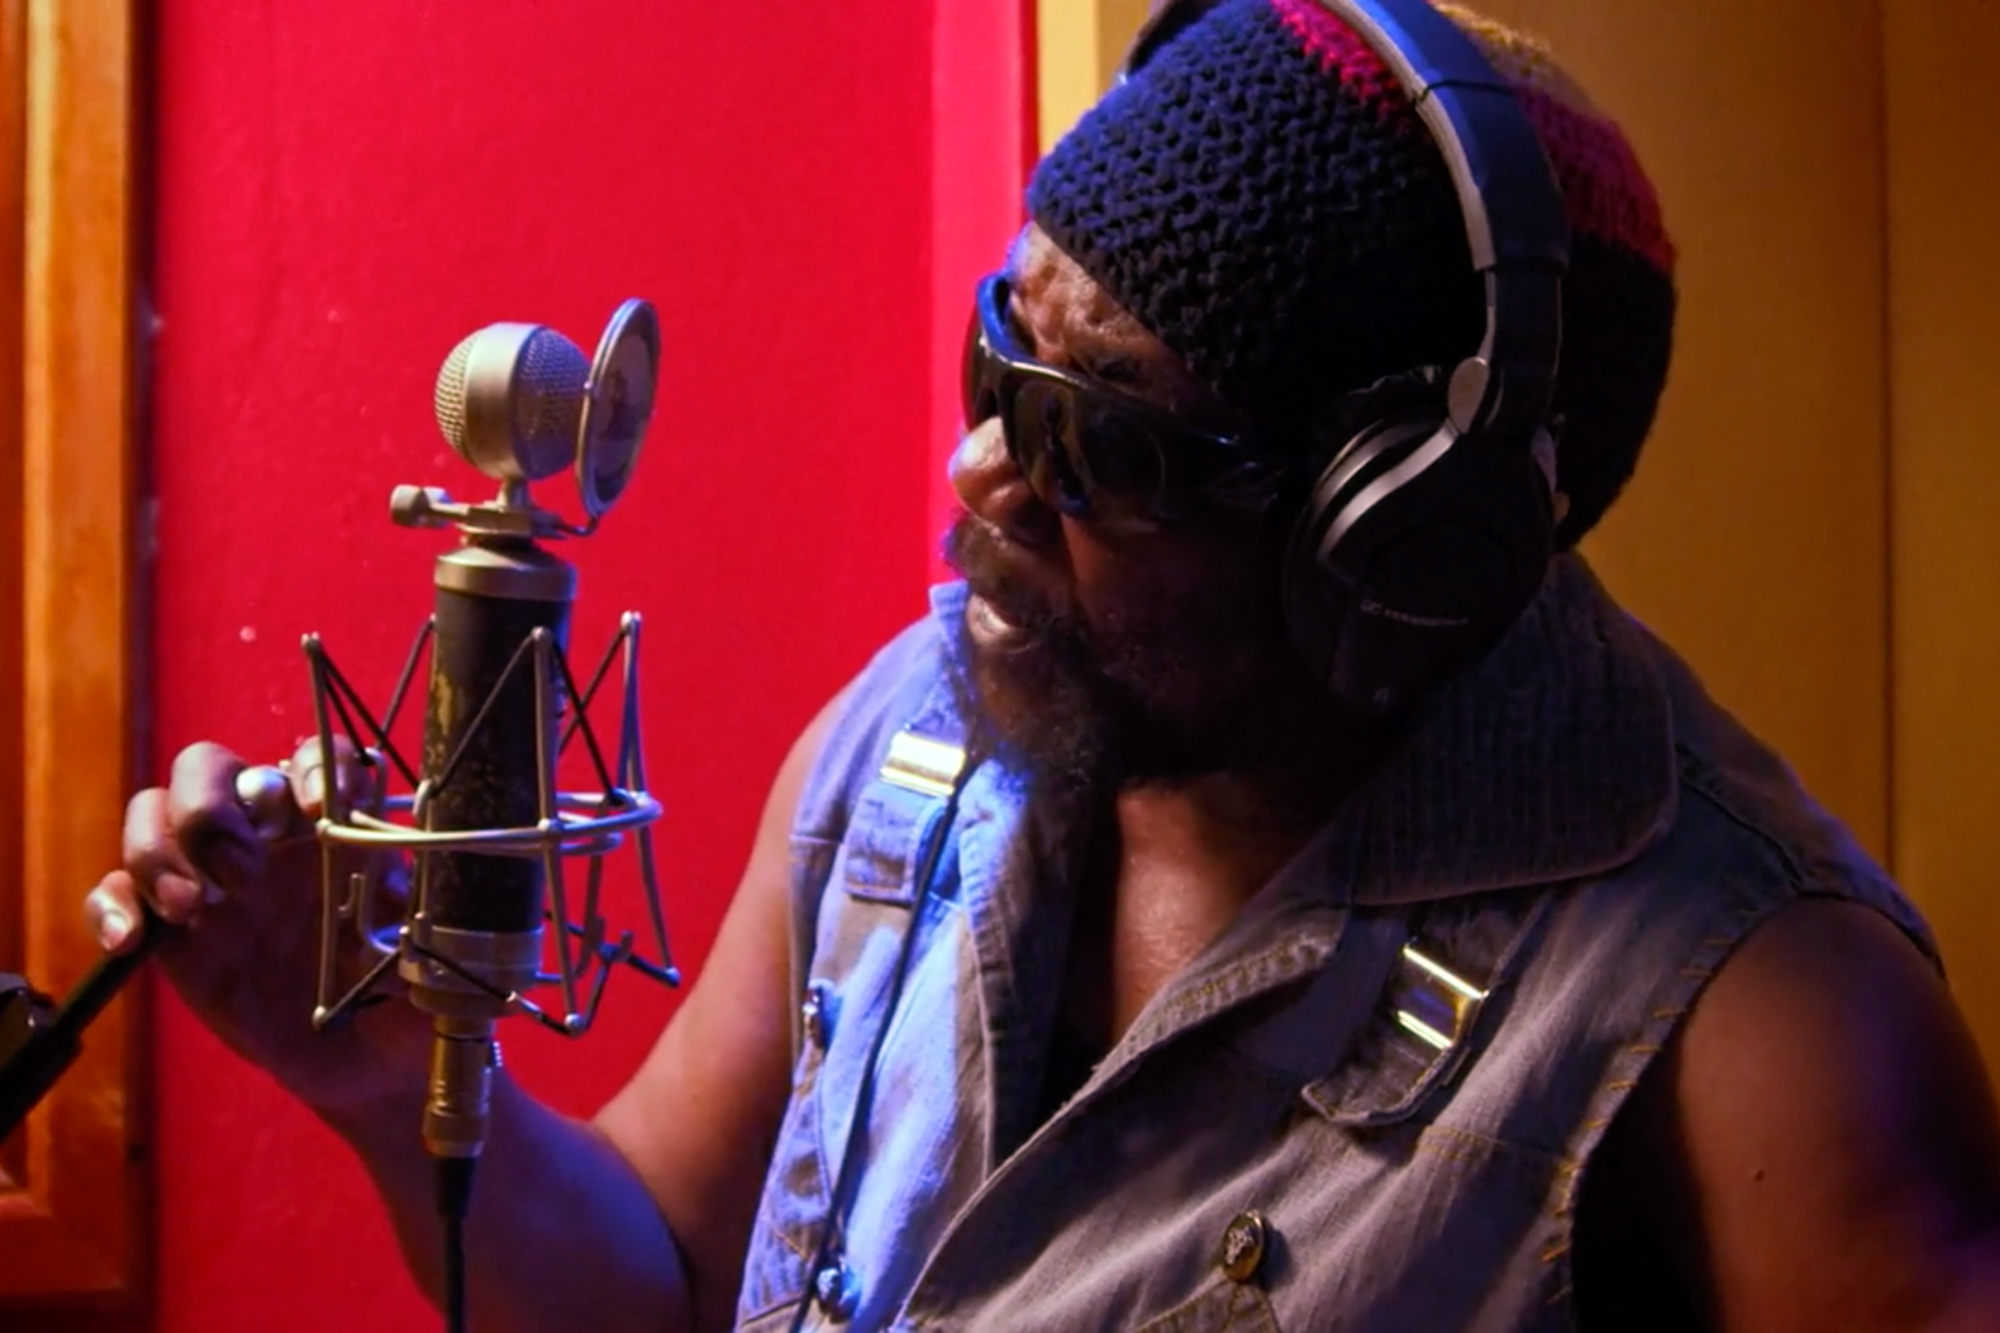 Watch Toots and the Maytals Cover Fleetwood Mac's Lovesick Blues 'Man of the World'